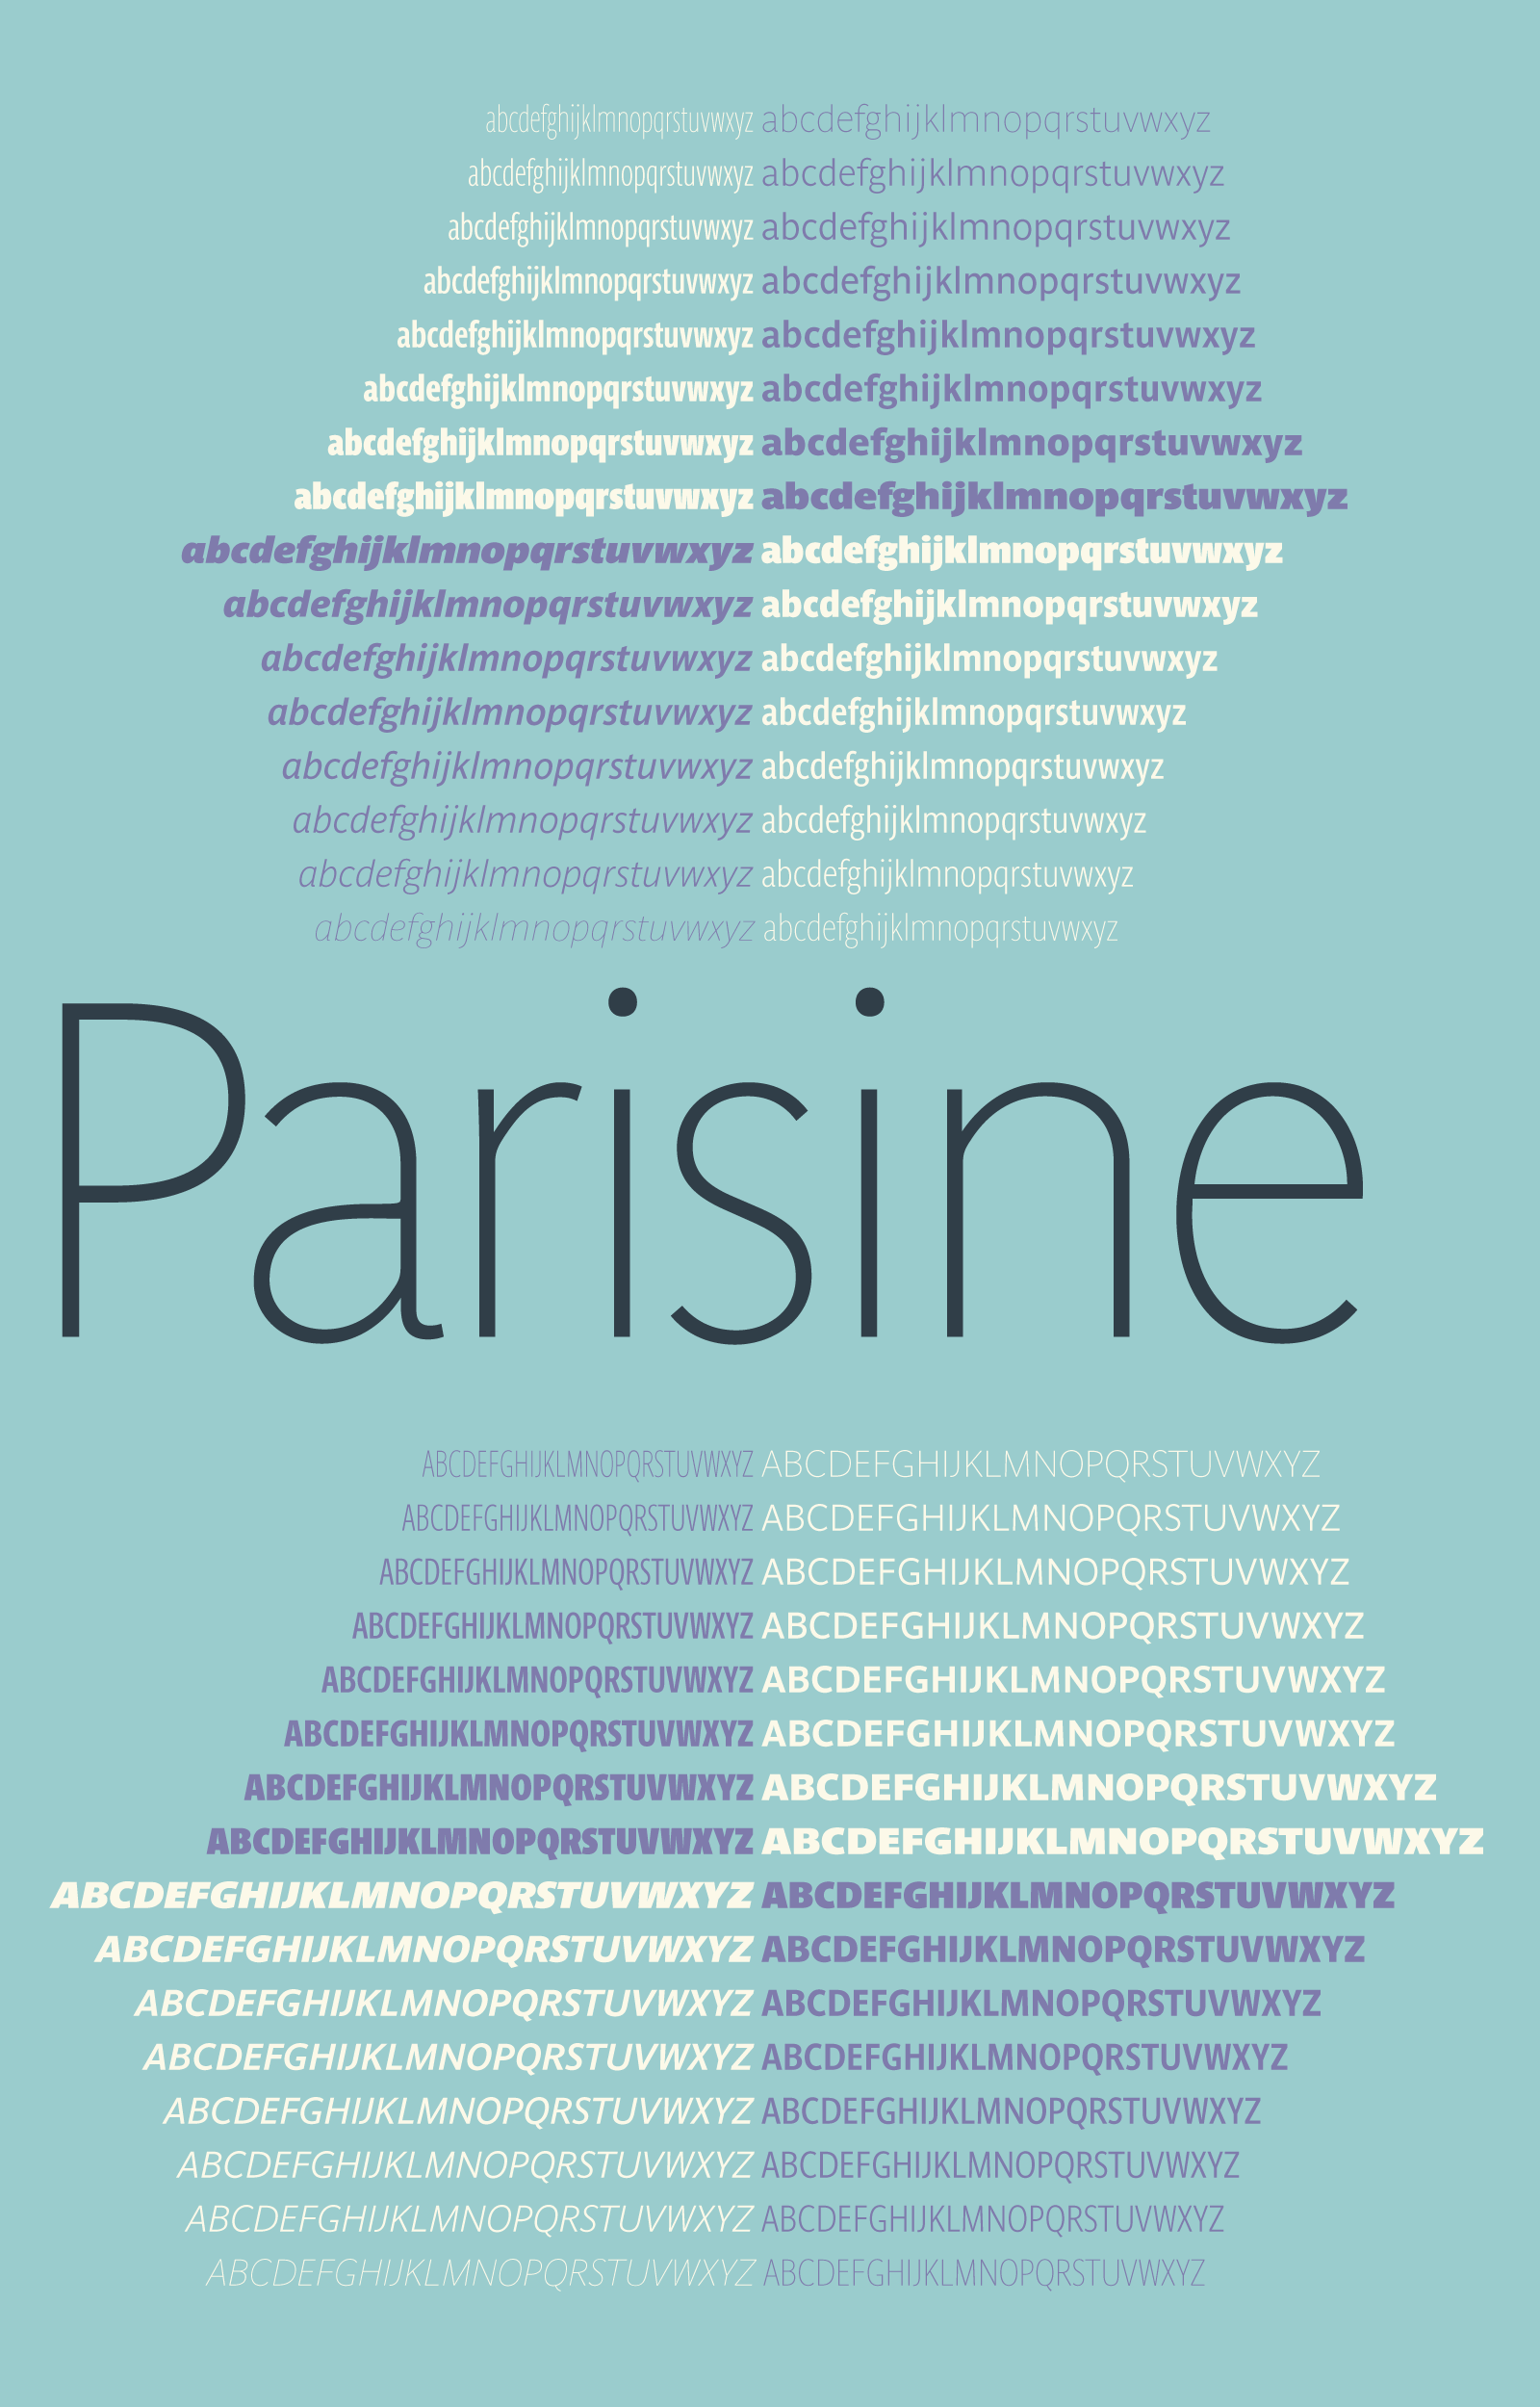 Parisine: Narrow and Compressed families by Jean Francois Porchez